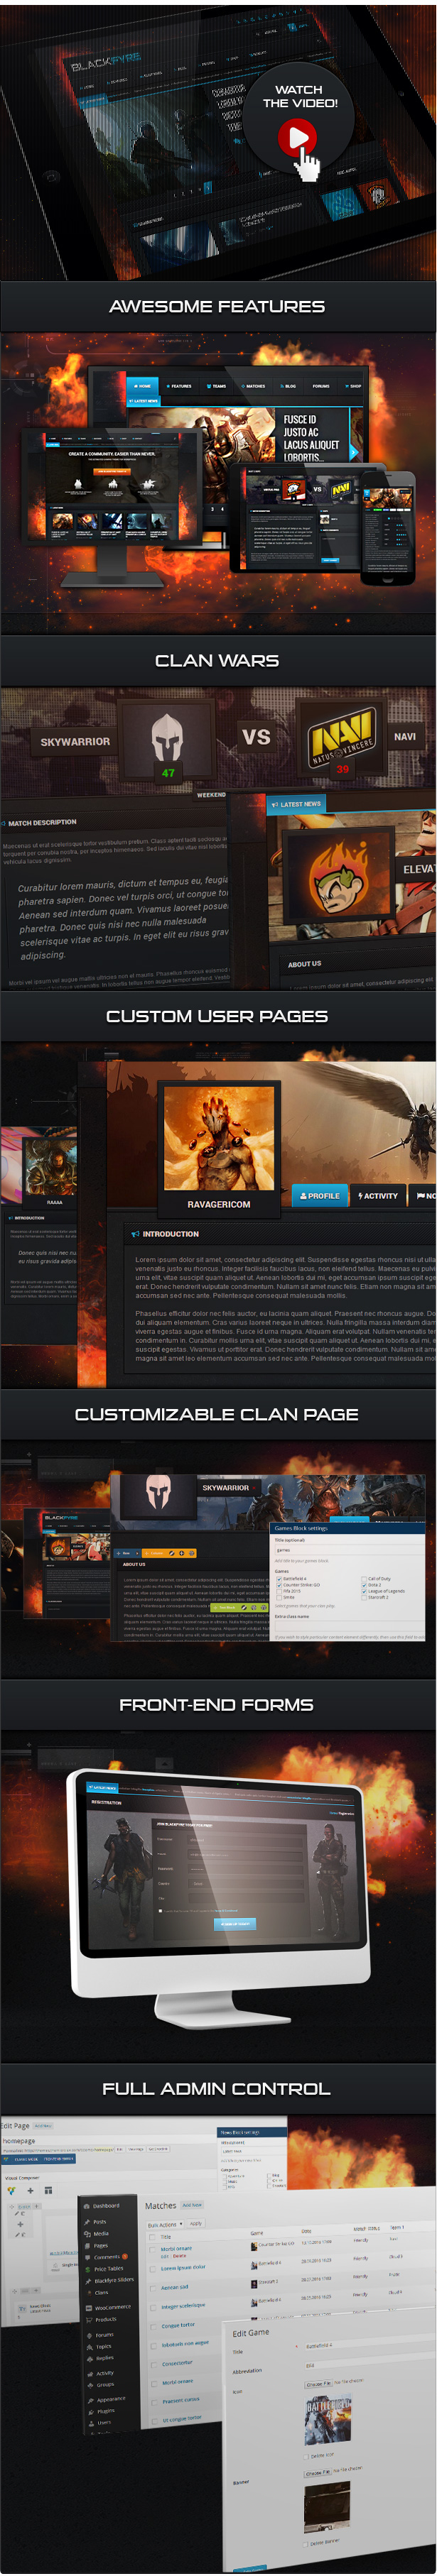 Blackfyre - Create Your Own Gaming Community - 1